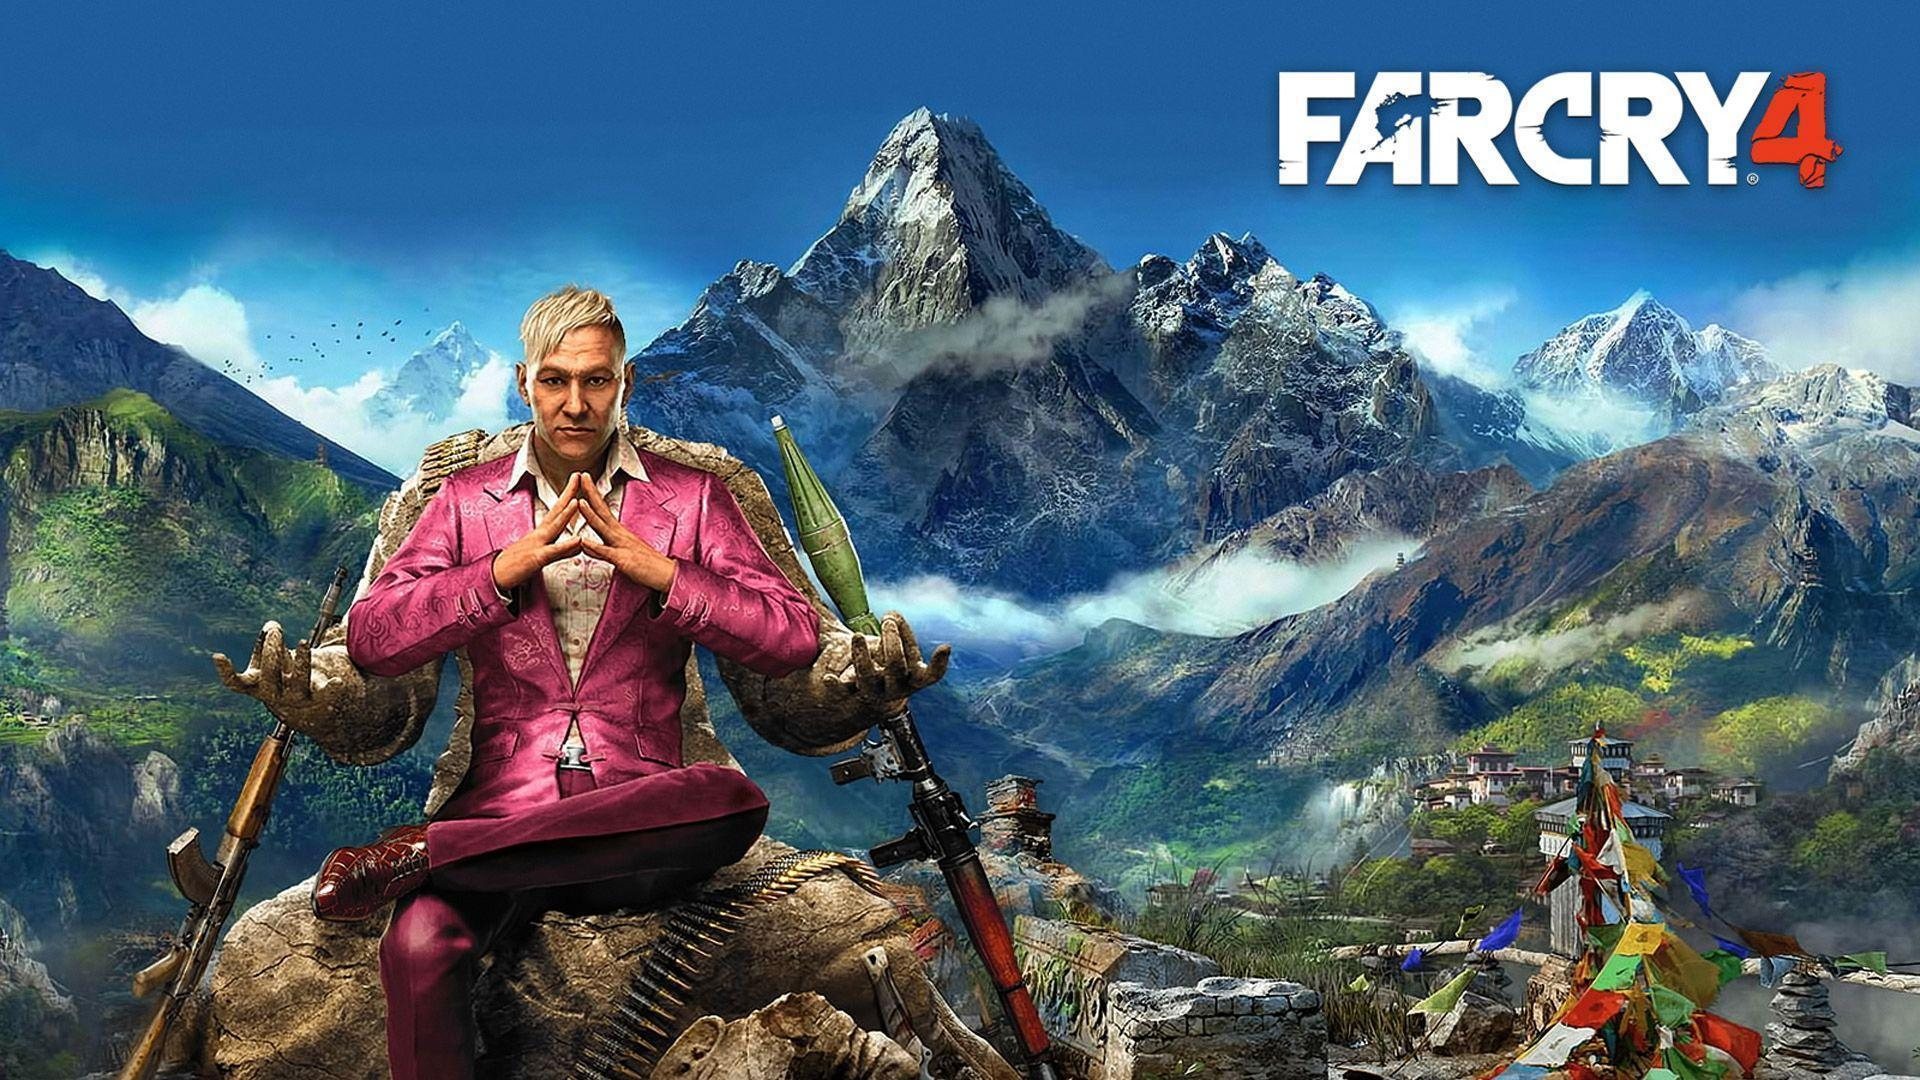 Far Cry 4 Wallpaper Elephant: Far Cry 4 Wallpapers